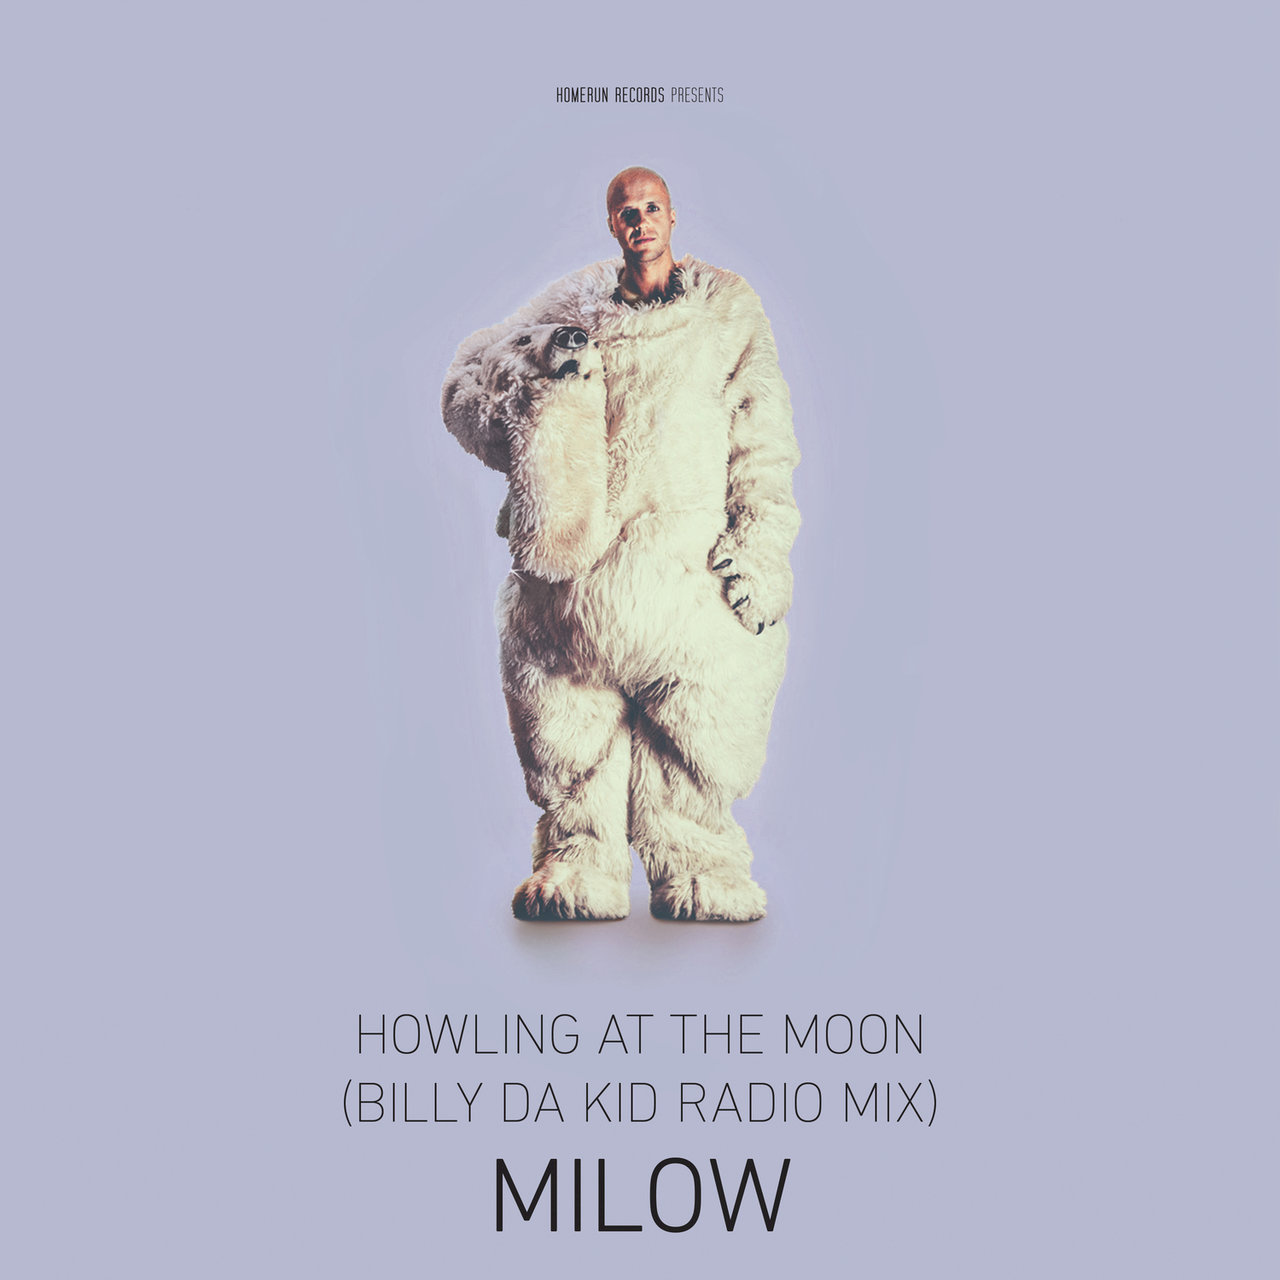 Howling At The Moon (Billy Da Kid Radio Mix)